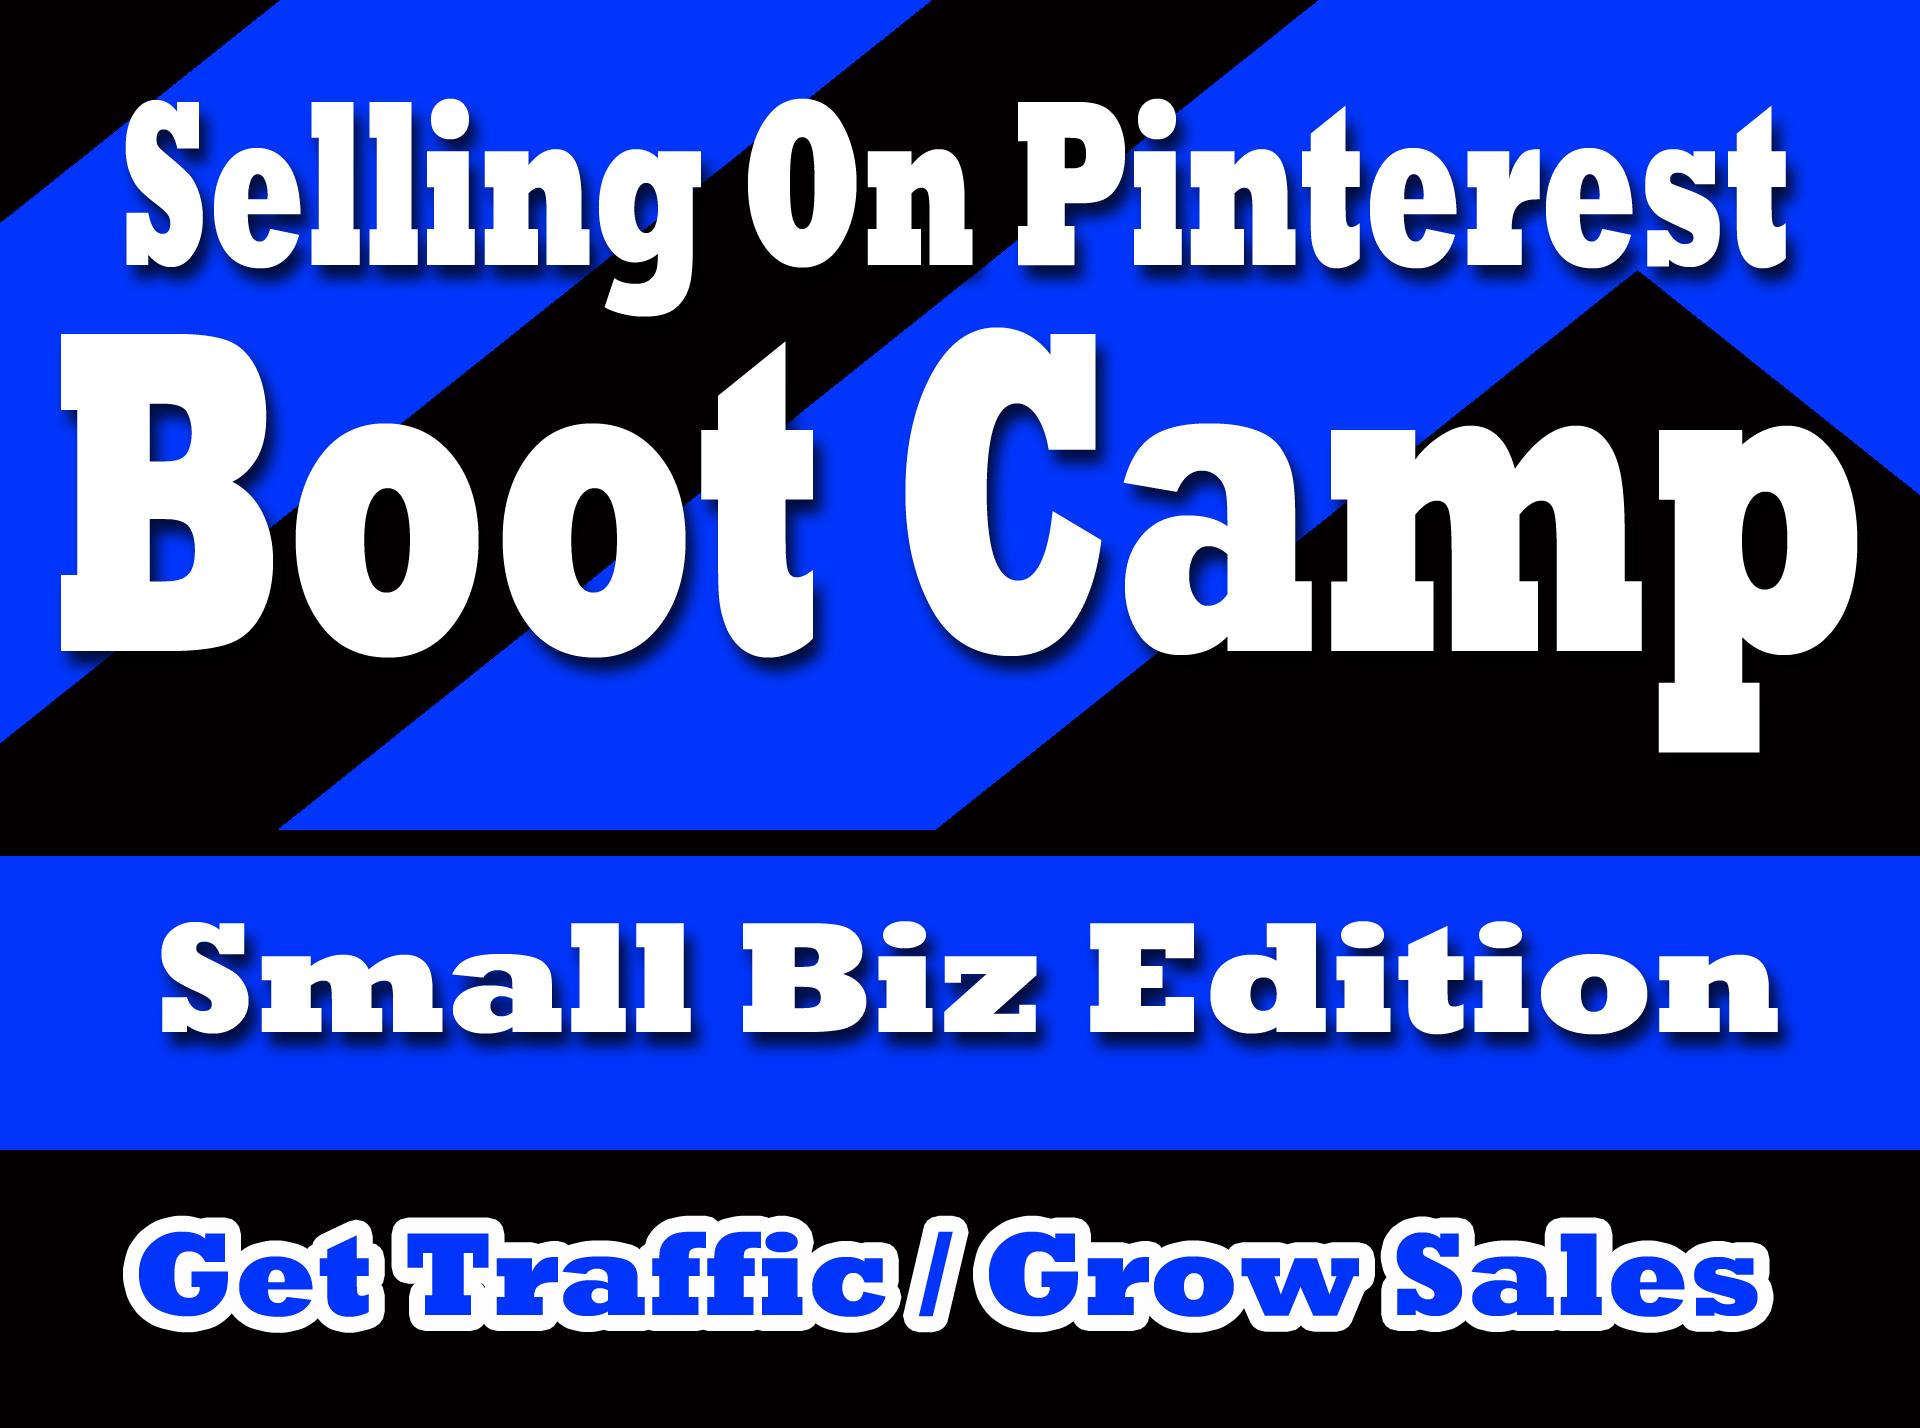 SELLING ON PINTEREST bootcamp